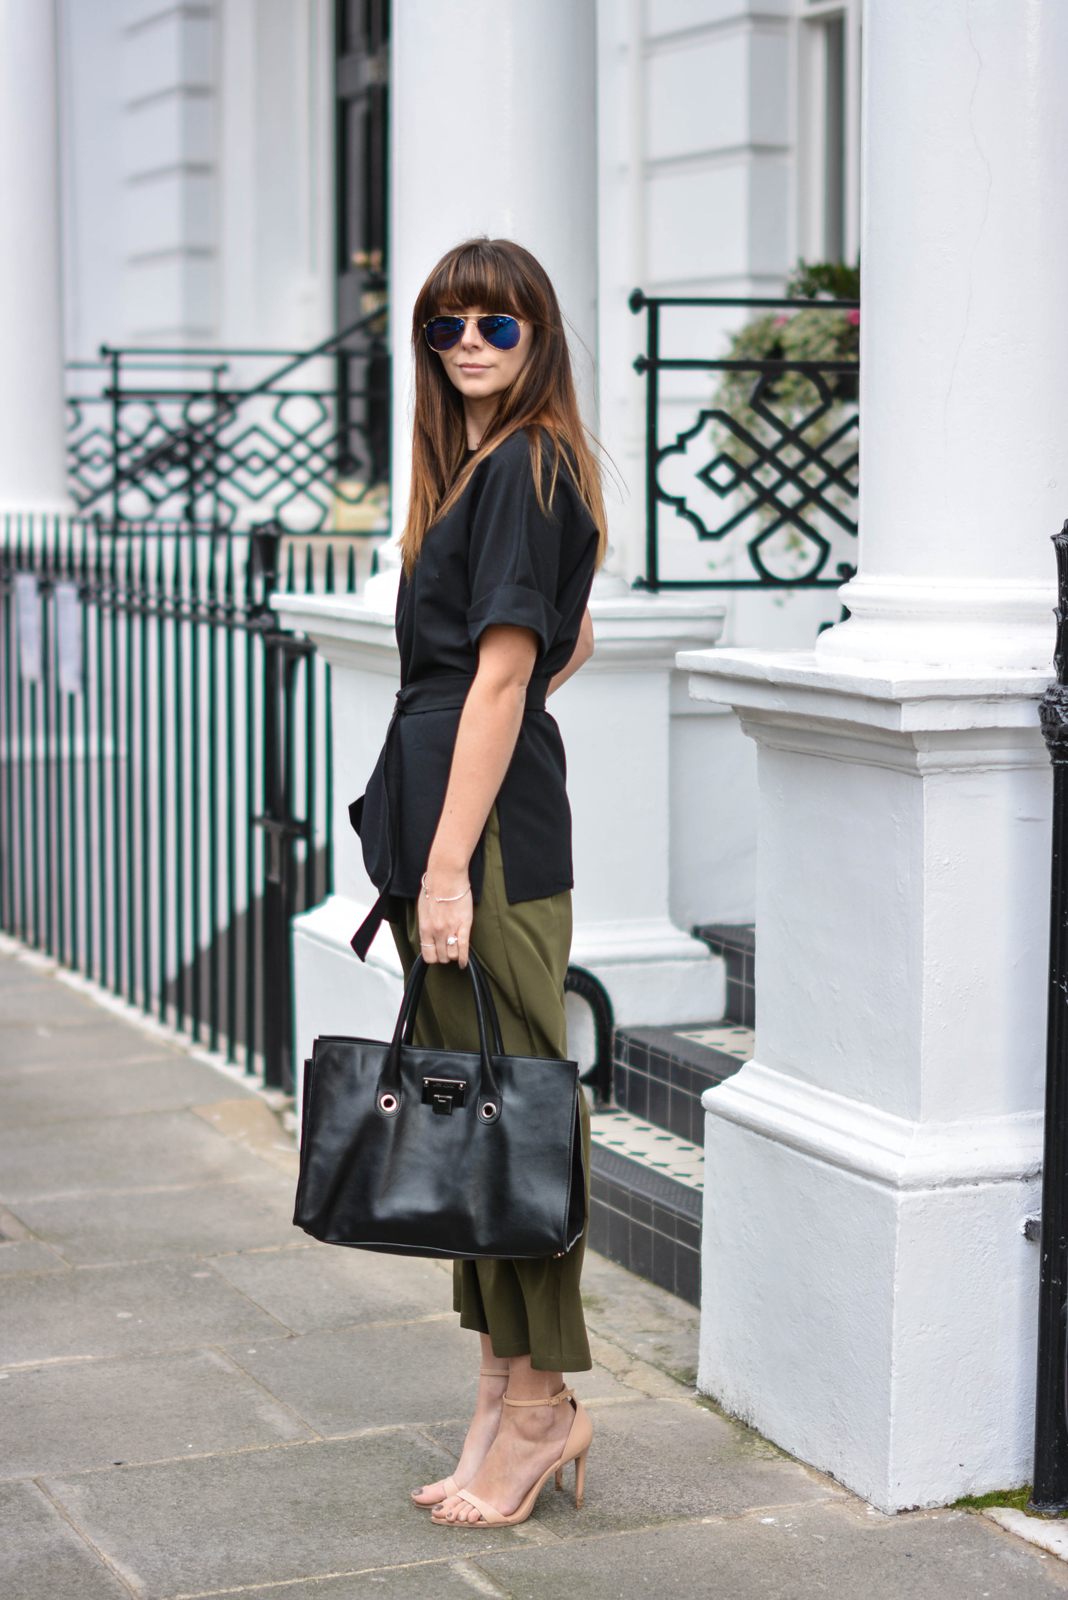 EJSTYLE - Emma Hill, London Street style, SS15, LFW, asos Khaki cropped trousers, Jimmy Choo Riley Bag, ASOS d ring black t shirt top, nude strappy sandals, ray ban sunglasses, OOTD, blogger